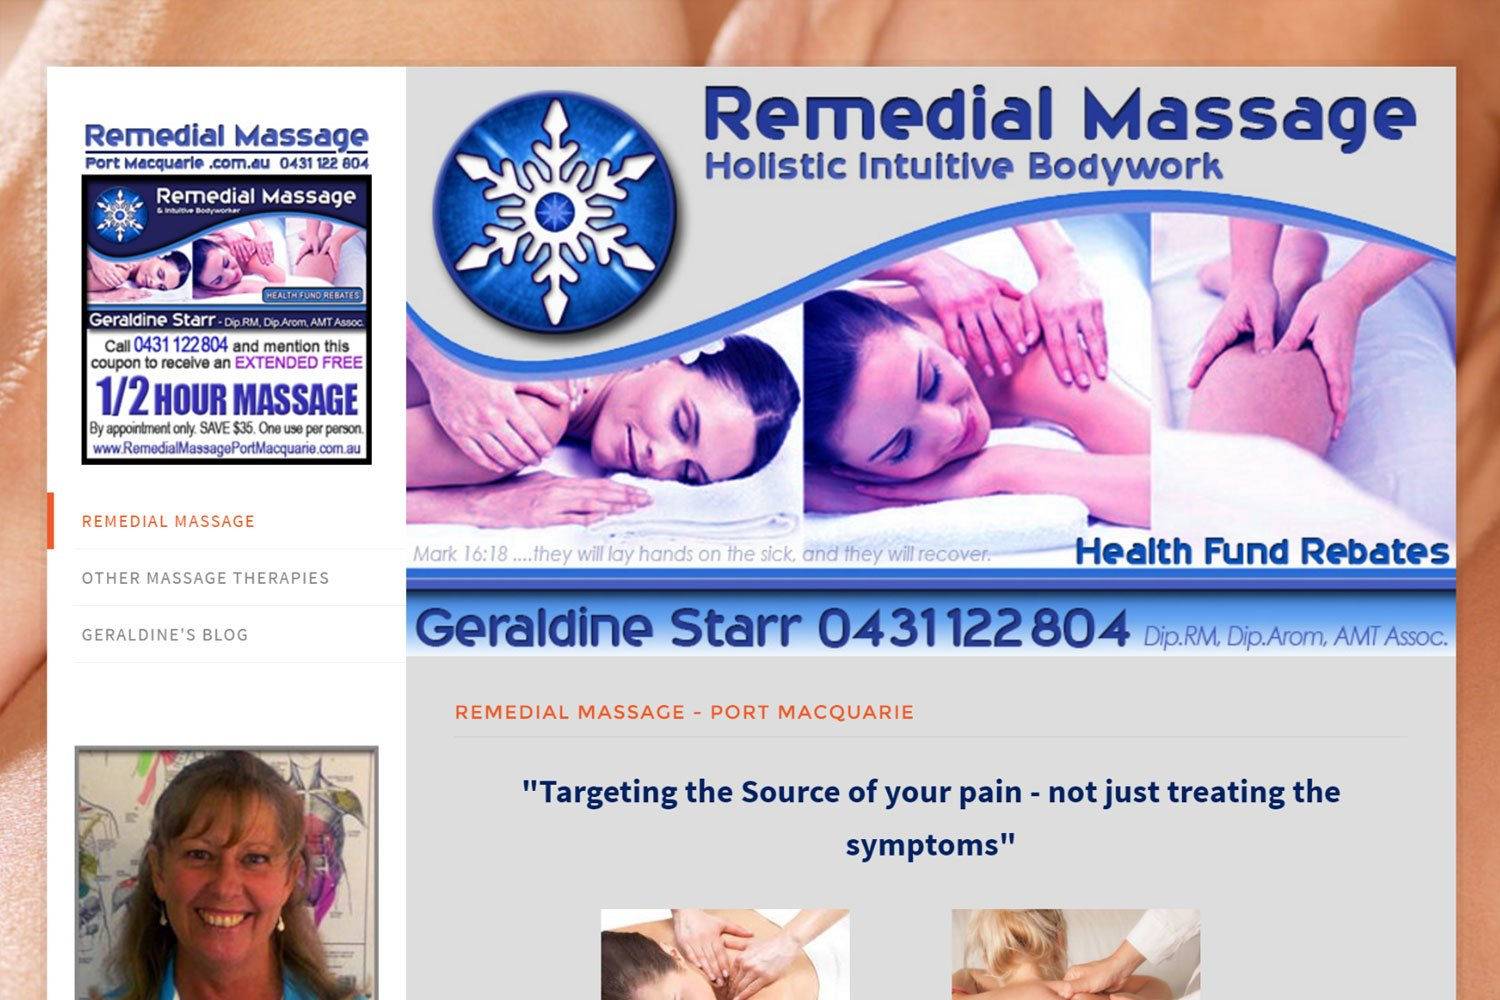 Edgezone Media's Client - Remedial Massage Port Macquarie - www.RemedialMassagePortMacquarie.com.au